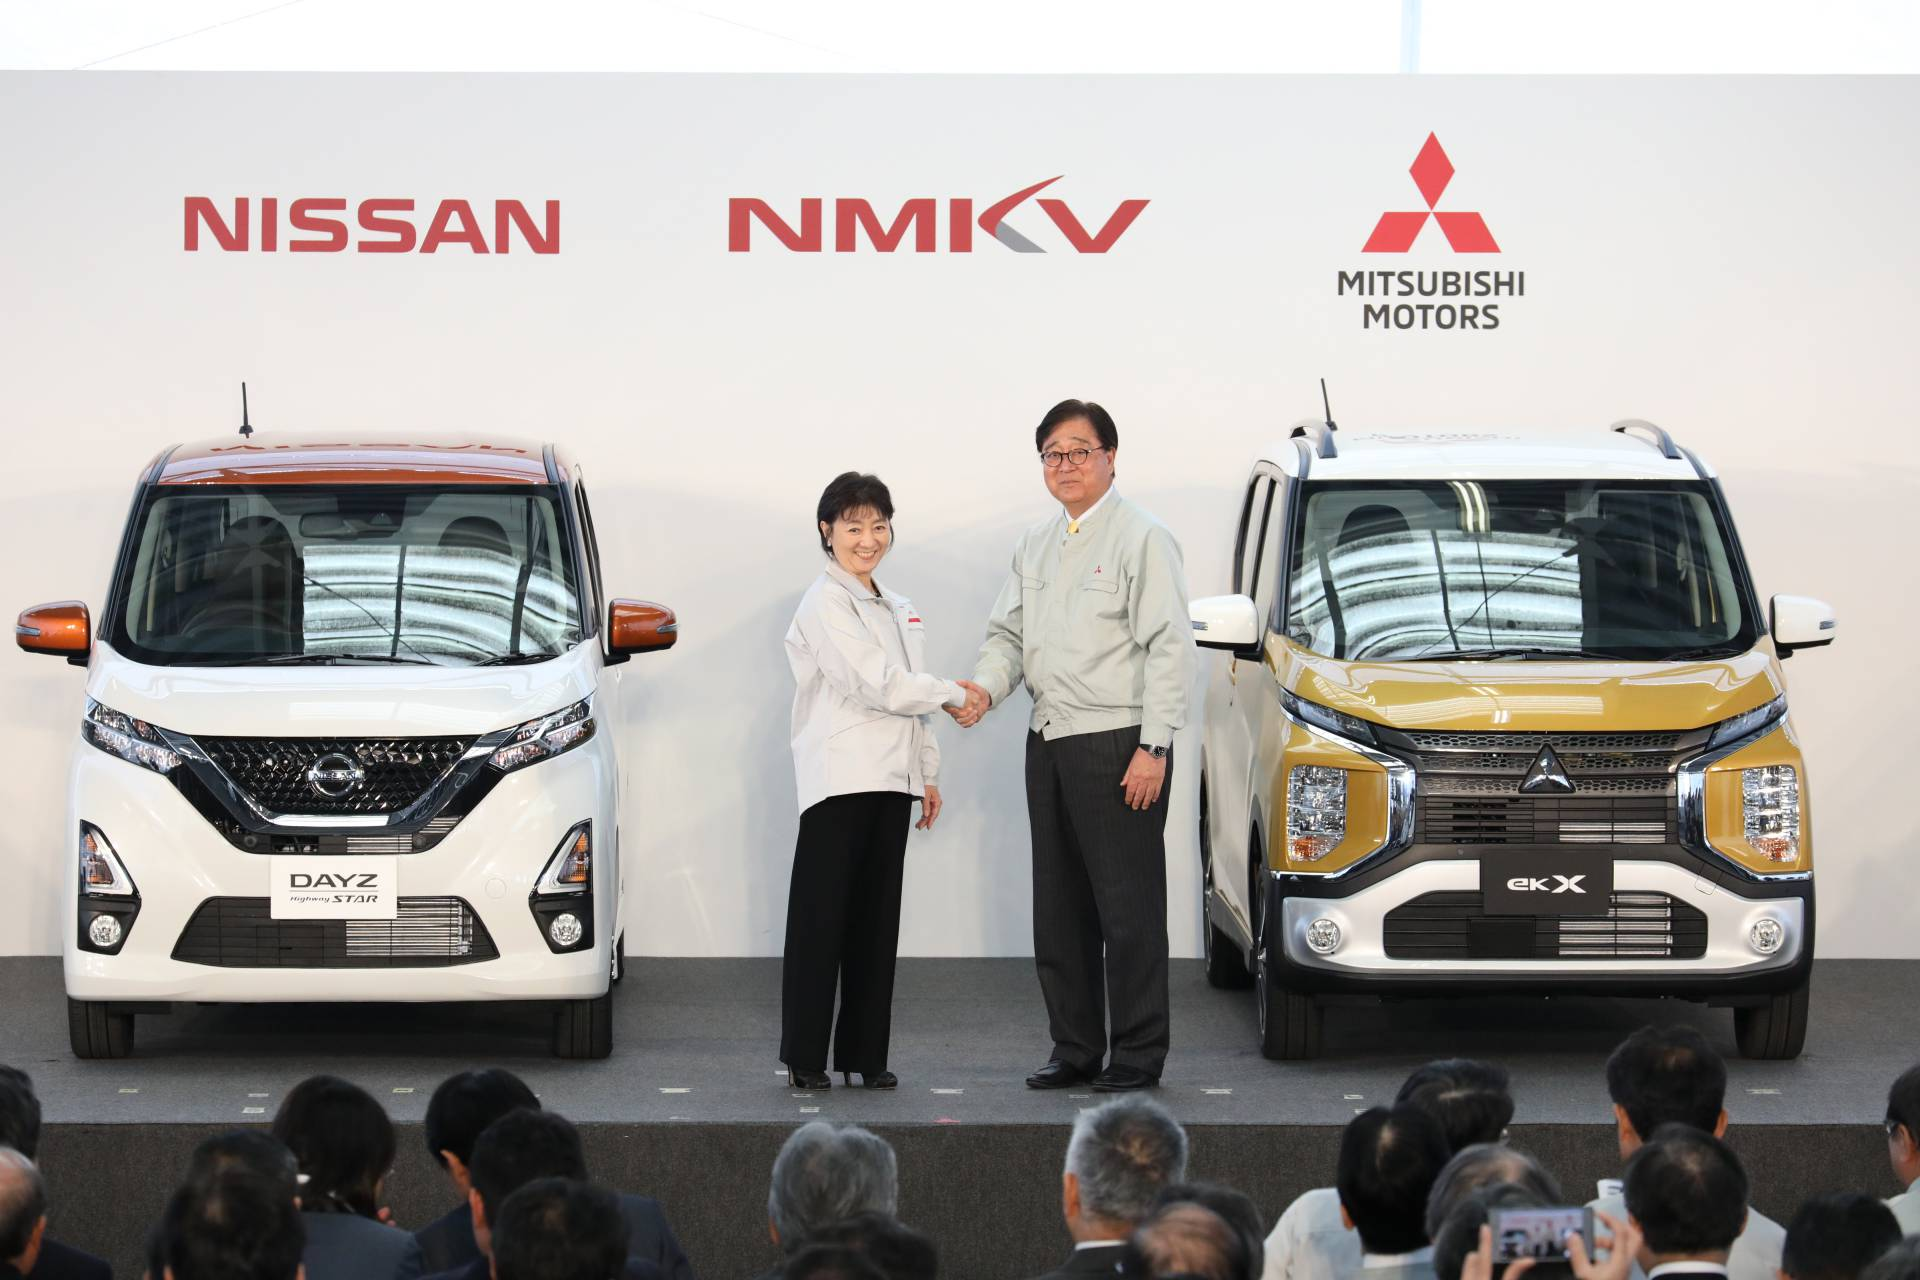 The Nissan-Mitsubishi joint enterprise has launched a generational update of its Mitsubishi eK and Nissan Dayz models